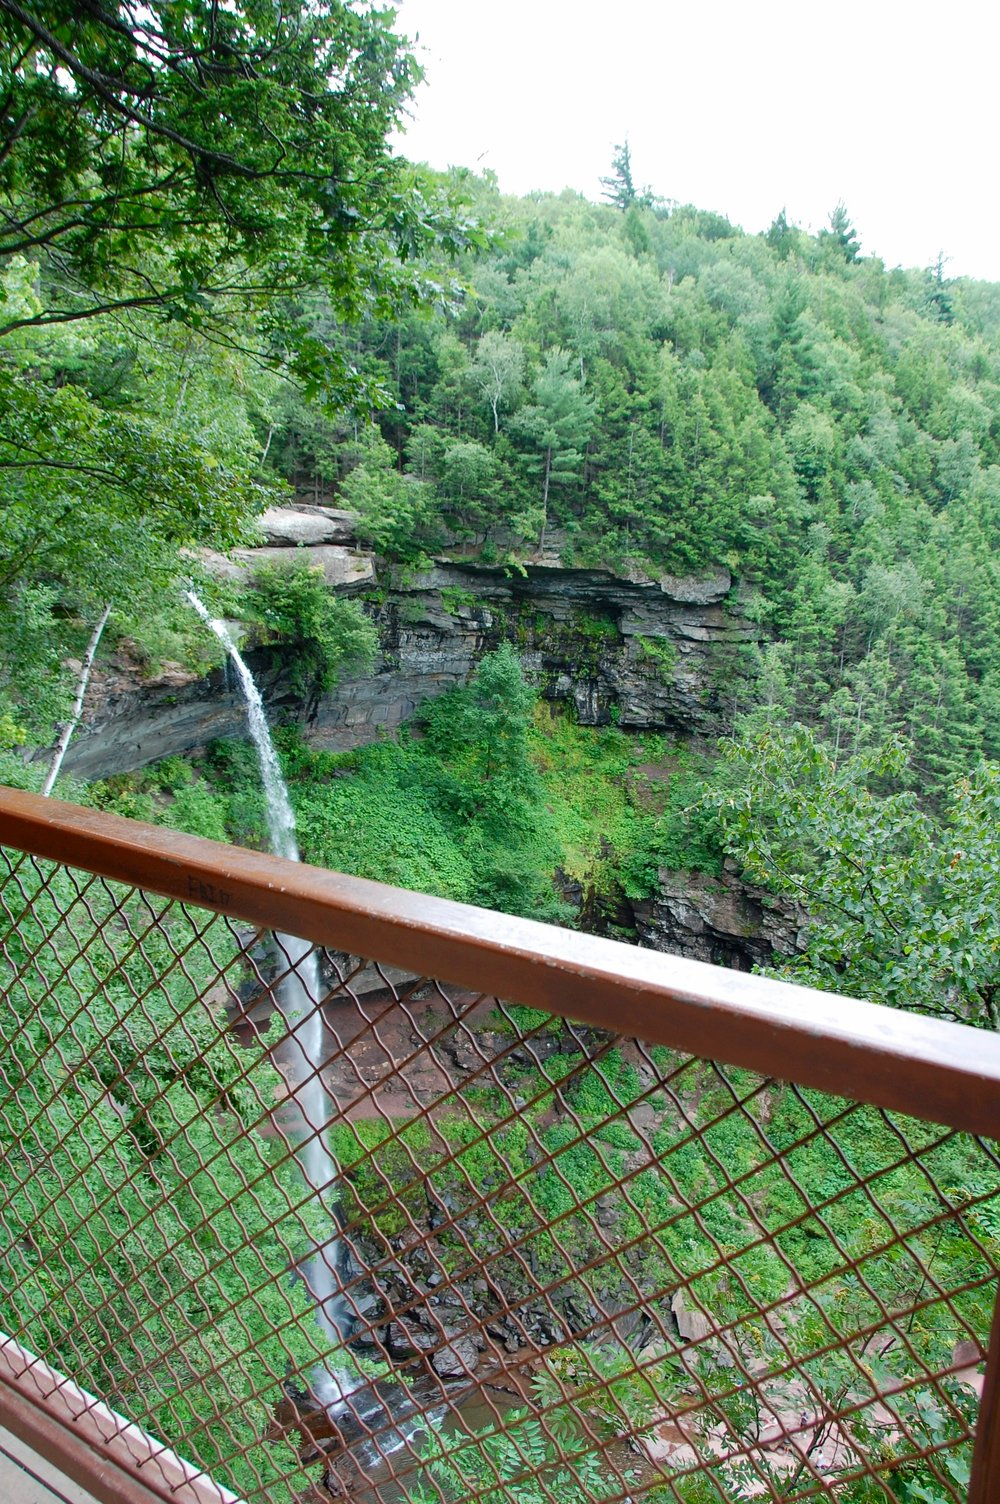 Panic attack at Kaaterskill Falls!